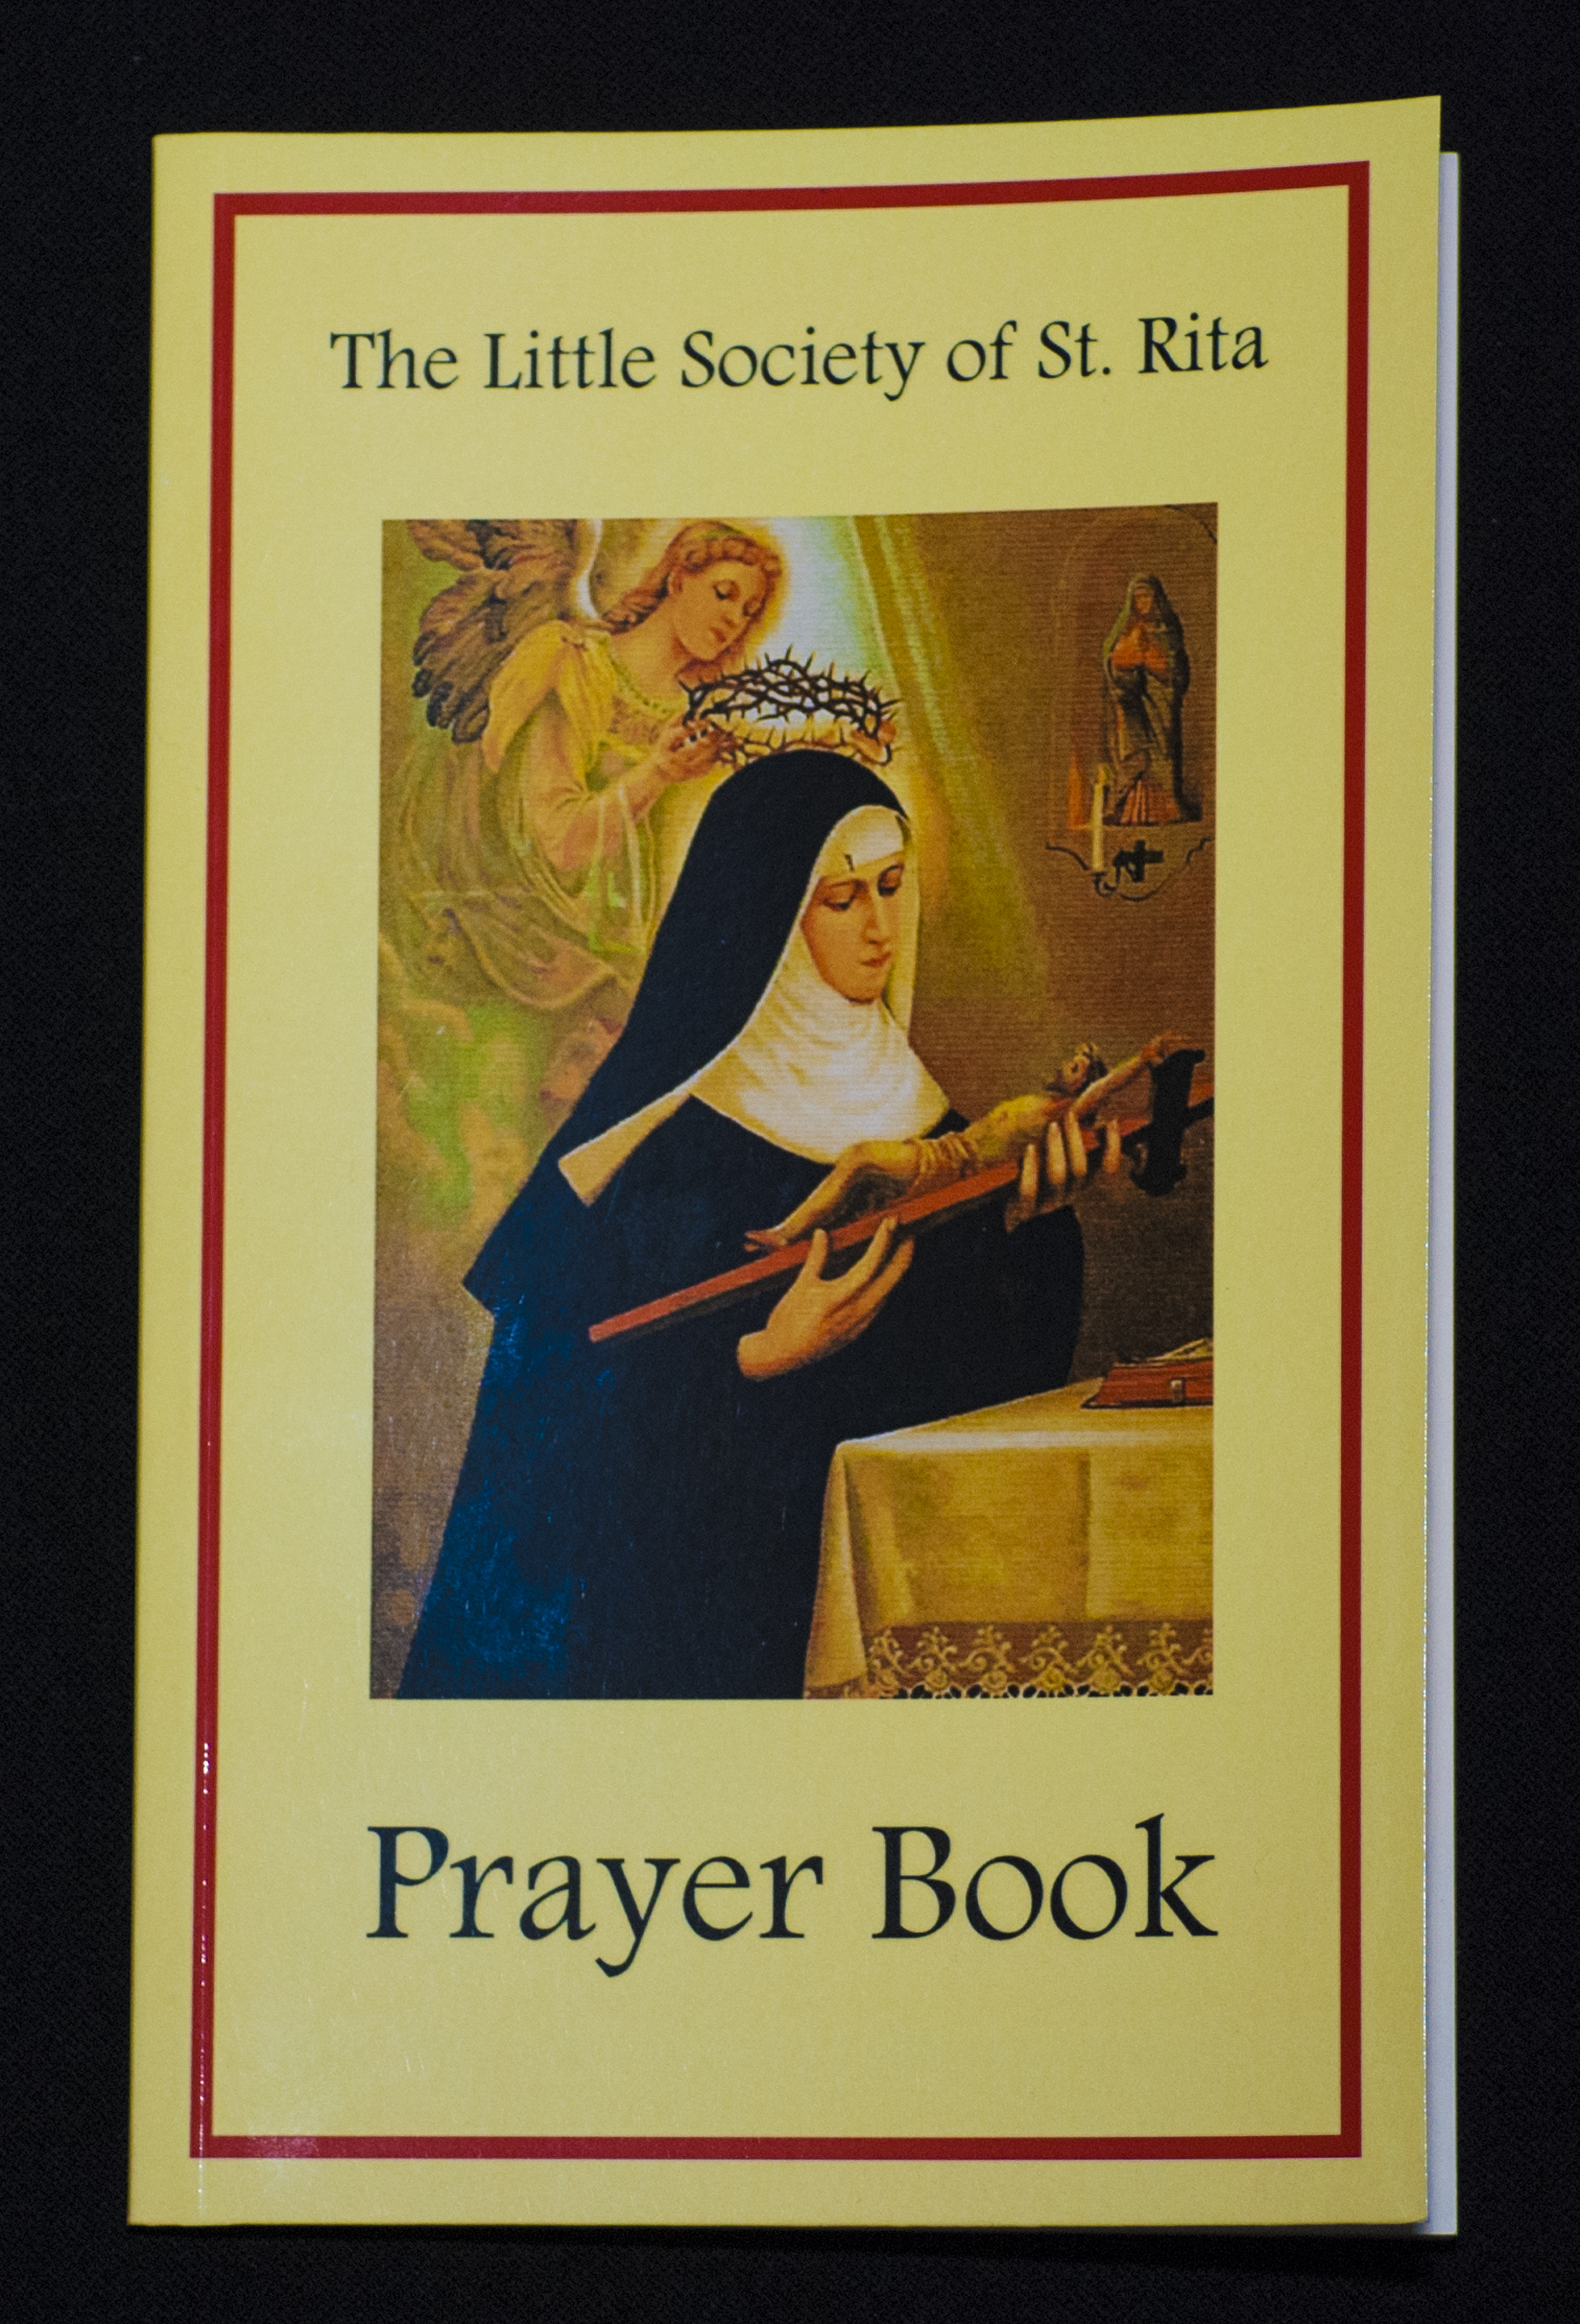 - The Little Society of Saint Rita$5.95  This prayer booklet presents elements of an approach on Gospel living based on the life and spiritual practices of Saint Rita of Cascia through the prayers, litany and novena of Saint Rita. The forward was written by our founding Shrine Rector Fr. Michael DiGregorio, O.S.A. This prayer book makes a wonderful companion to your devotions to Saint Rita and makes a wonderful gift to anyone who is a devotee of Saint Rita.Softcover - 56 page booklet